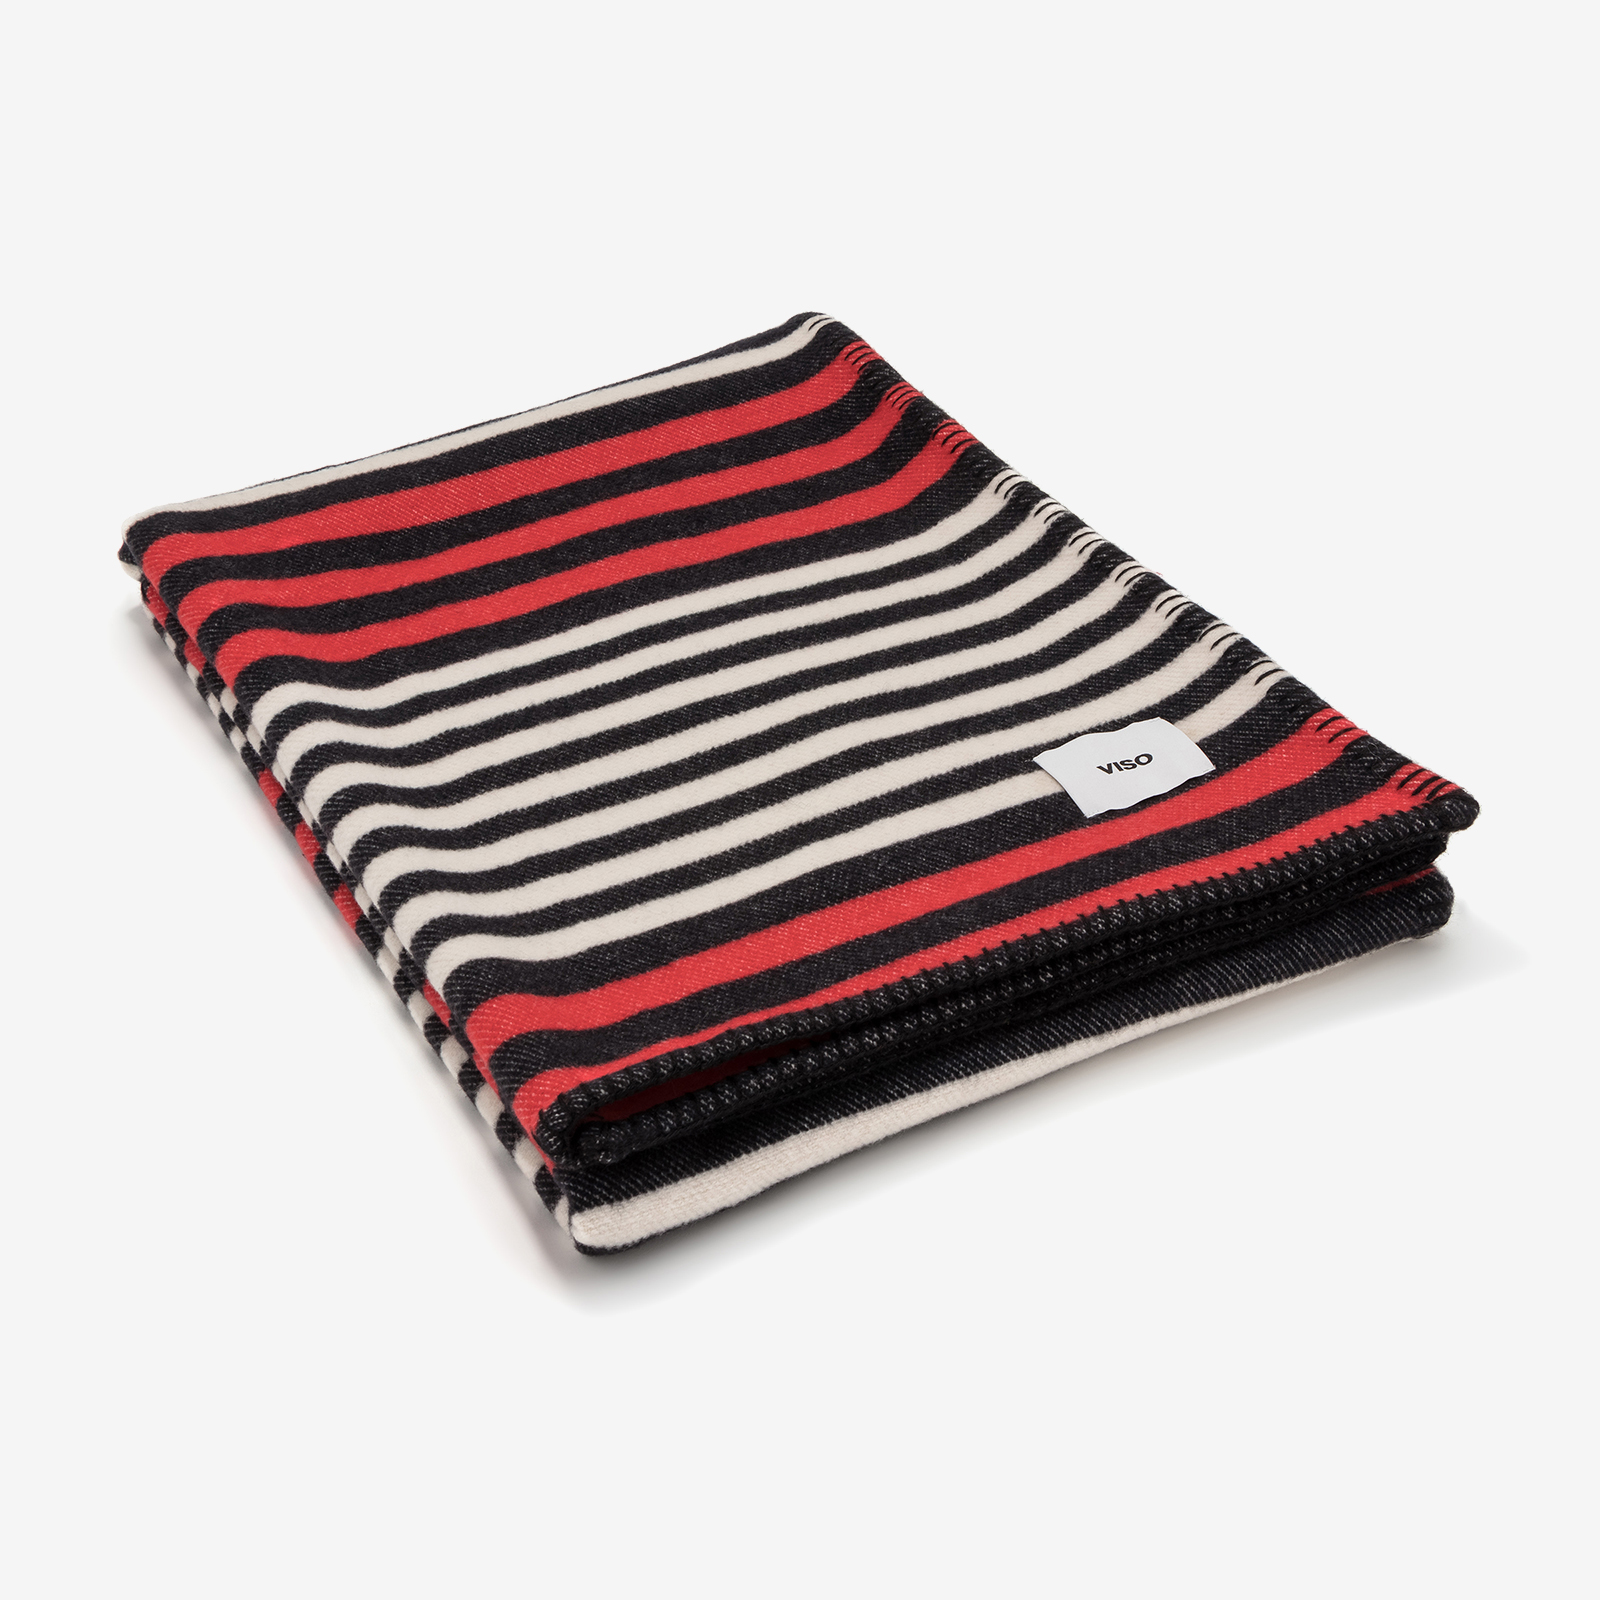 Blanket product picture